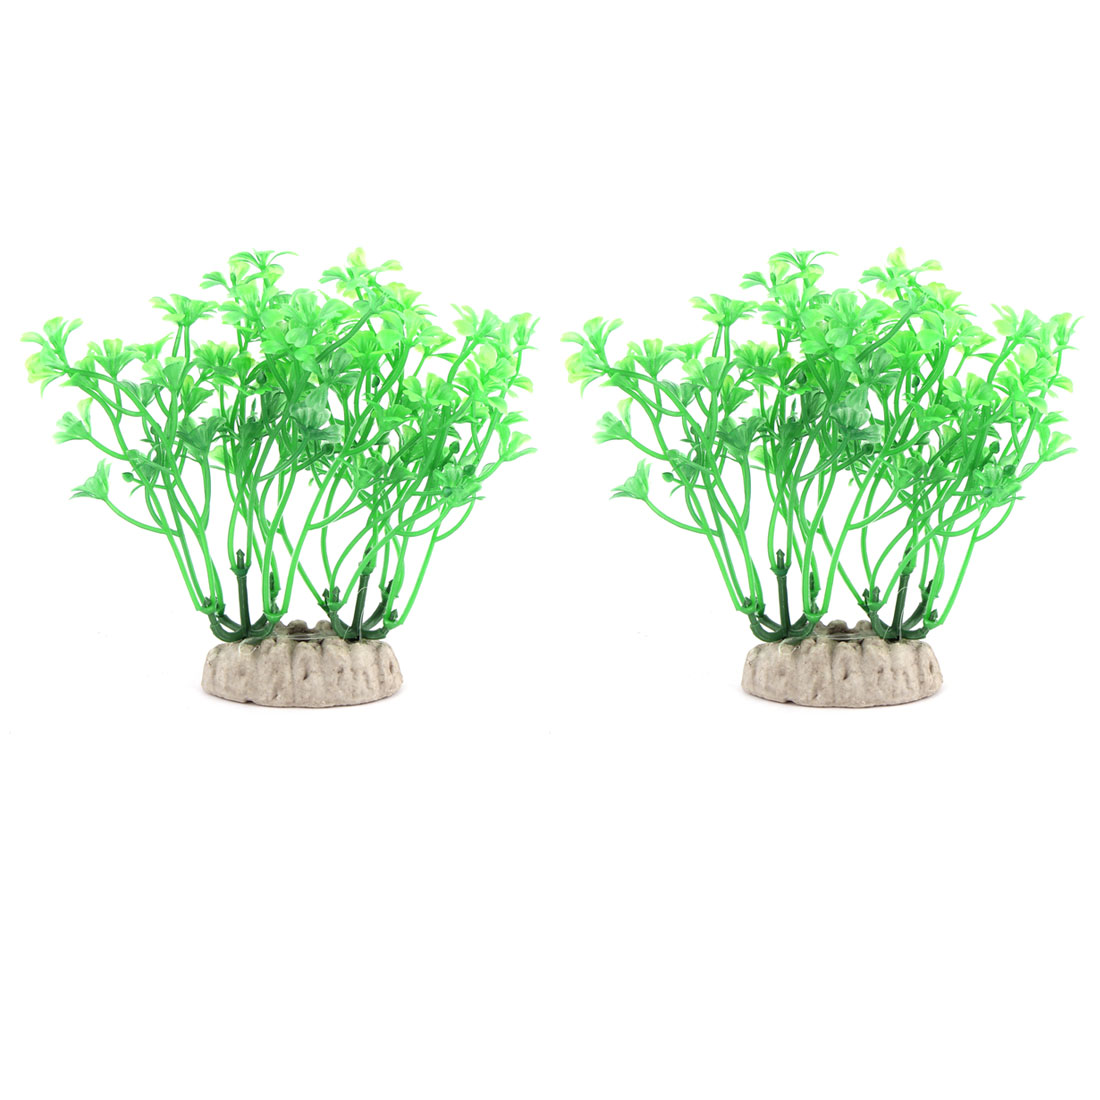 Fish Bowl Aquarium Ceramic Base Plastic Underwater Plant Grass Landscaping 2 PCS